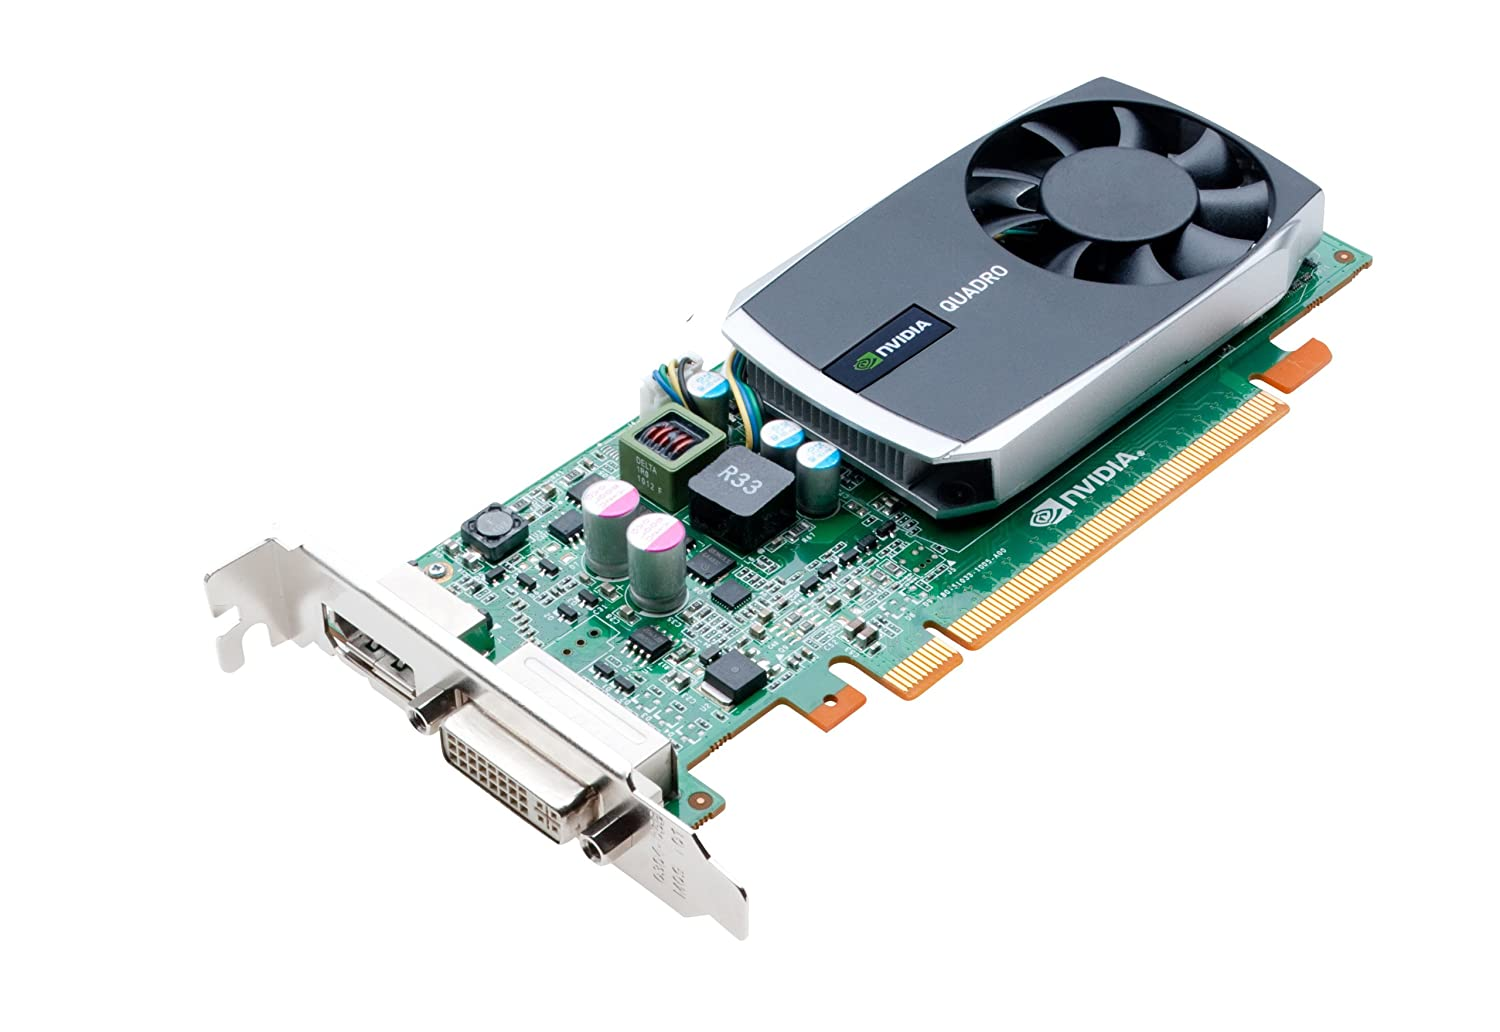 Nvidia Quadro 600 By Pny 1gb Ddr3 Pci Express Gen 2 X16 Ait 1 Pcb 4 Channel Motor Control Rev Ac Circuit Board Used Ebay Dvi I Dl And Displayport Opengl Directx Cuda Opencl Professional Graphics